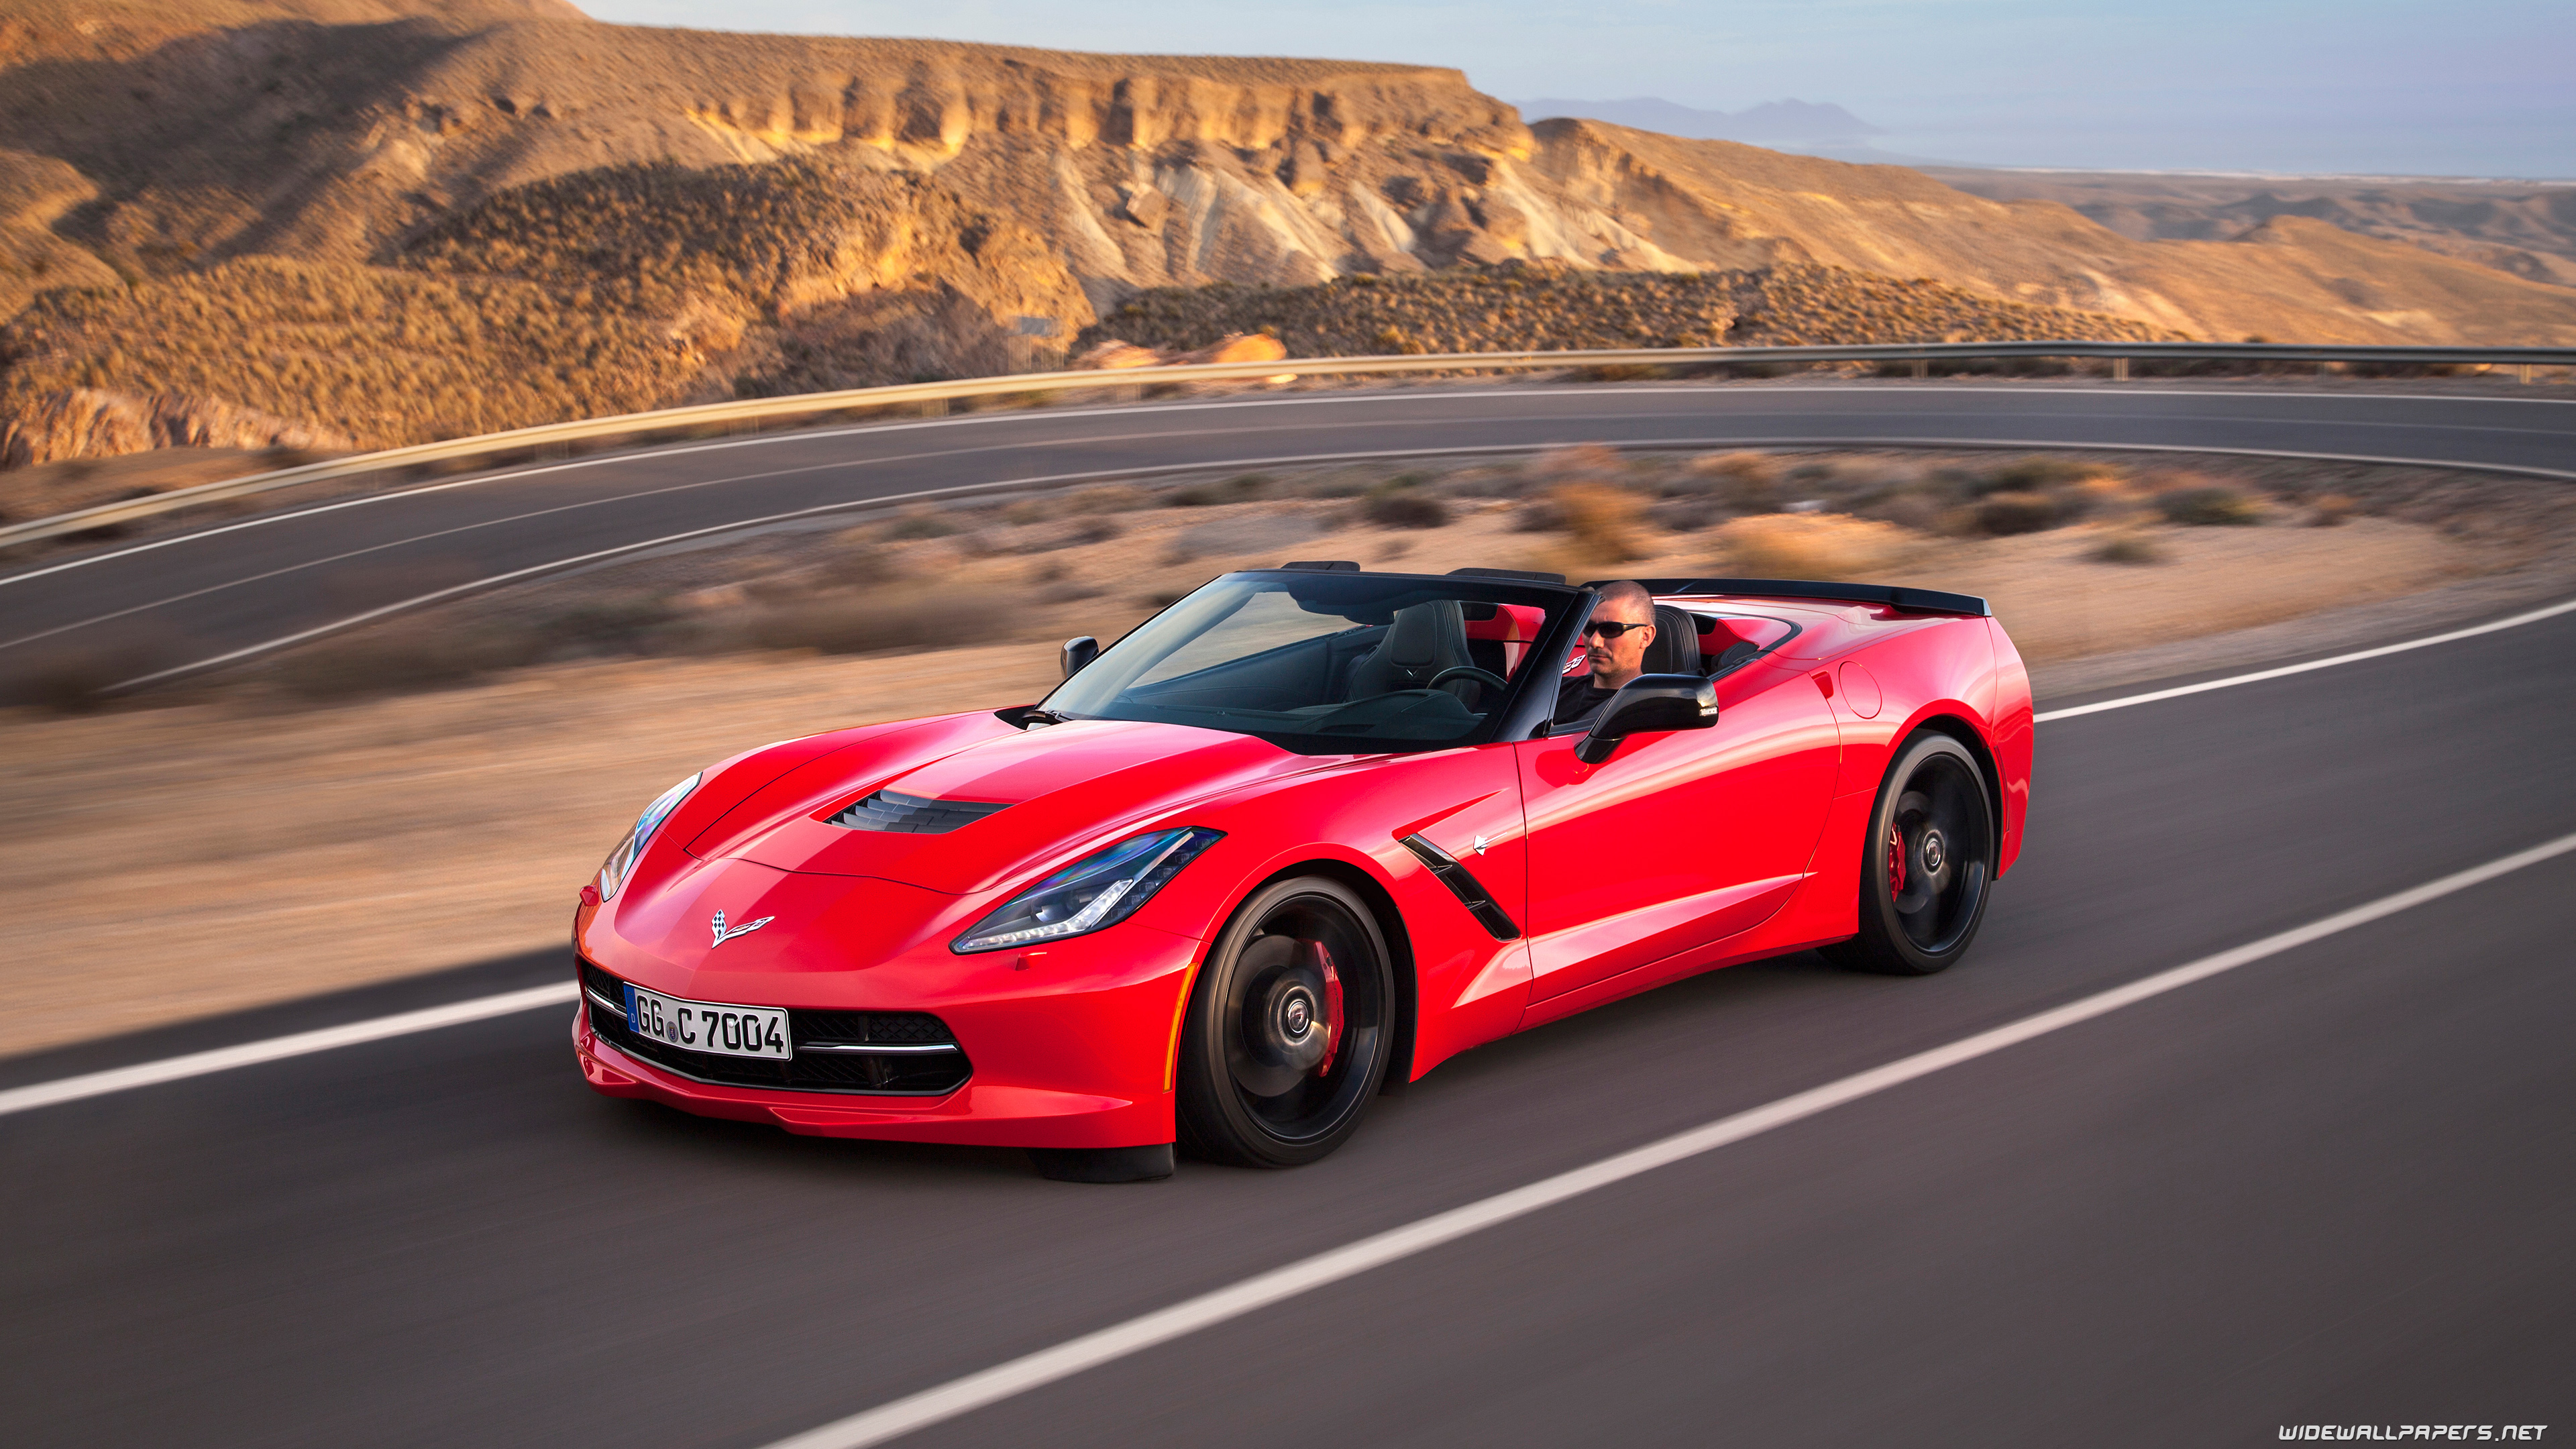 chevrolet corvette stingray wallpaper hd images